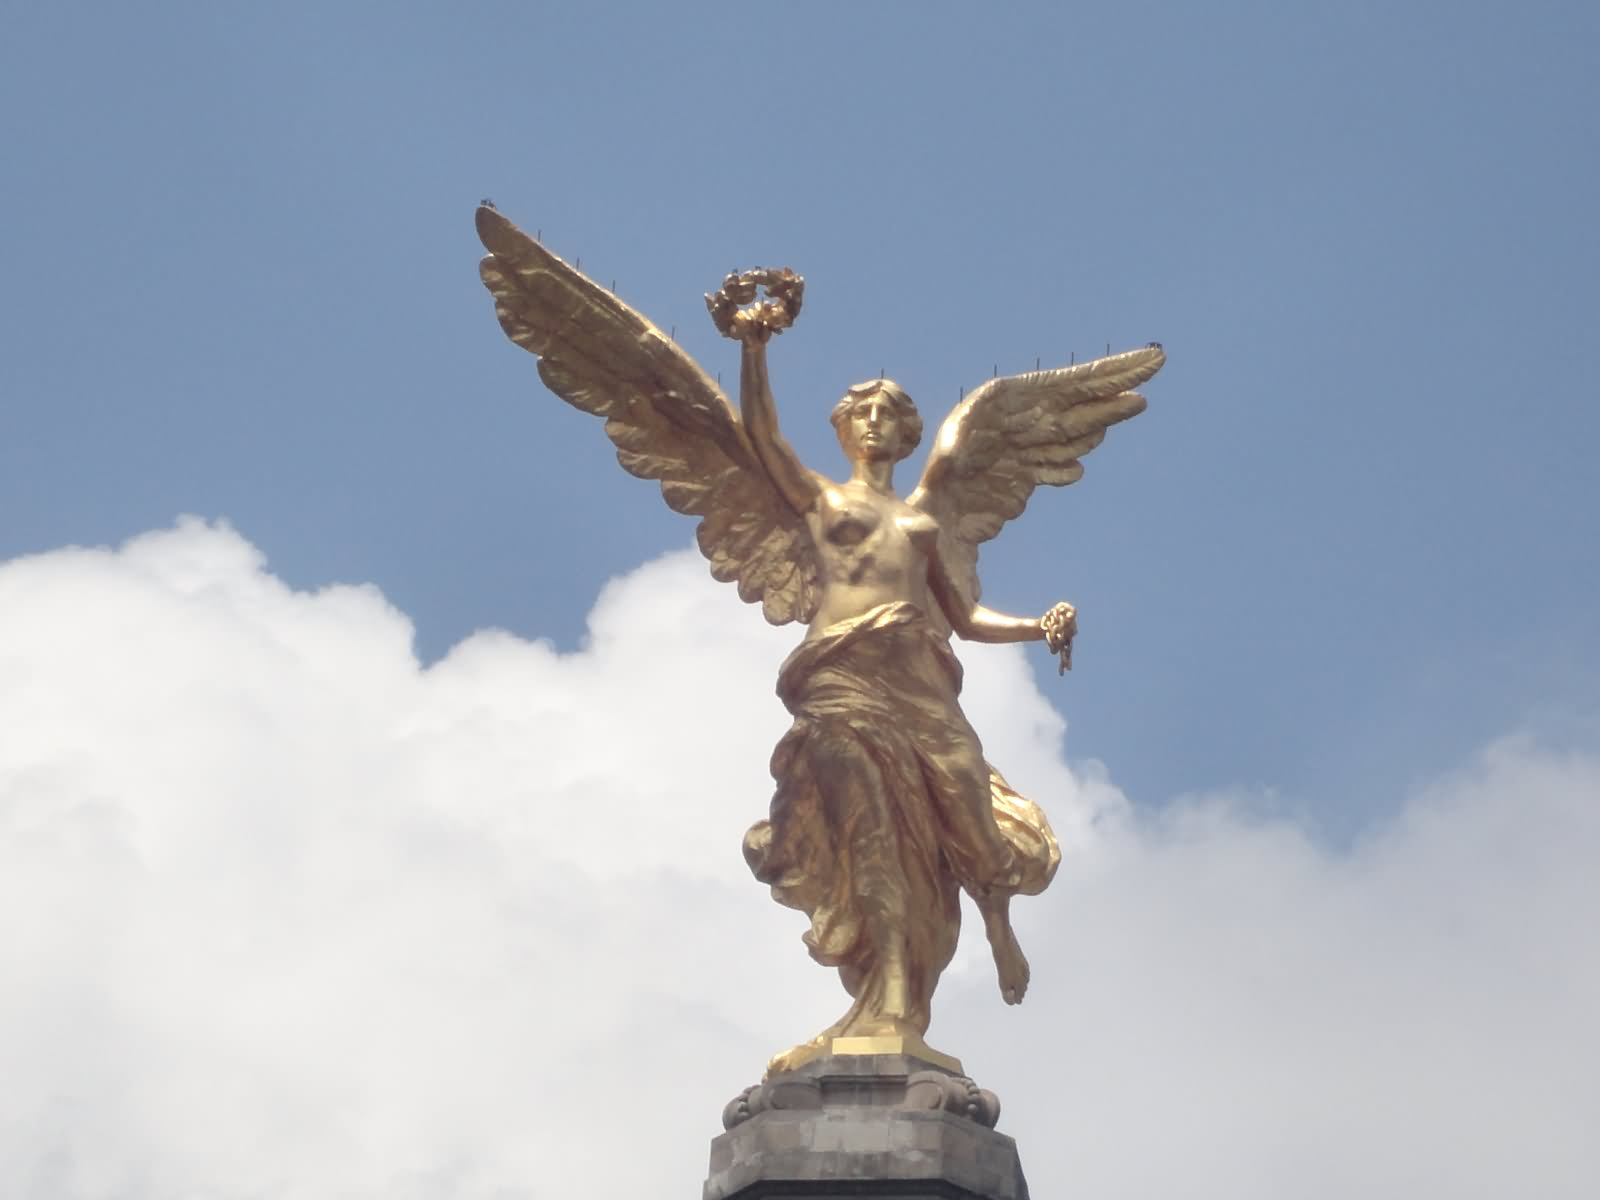 Golden Statue Of Angel Of Independence